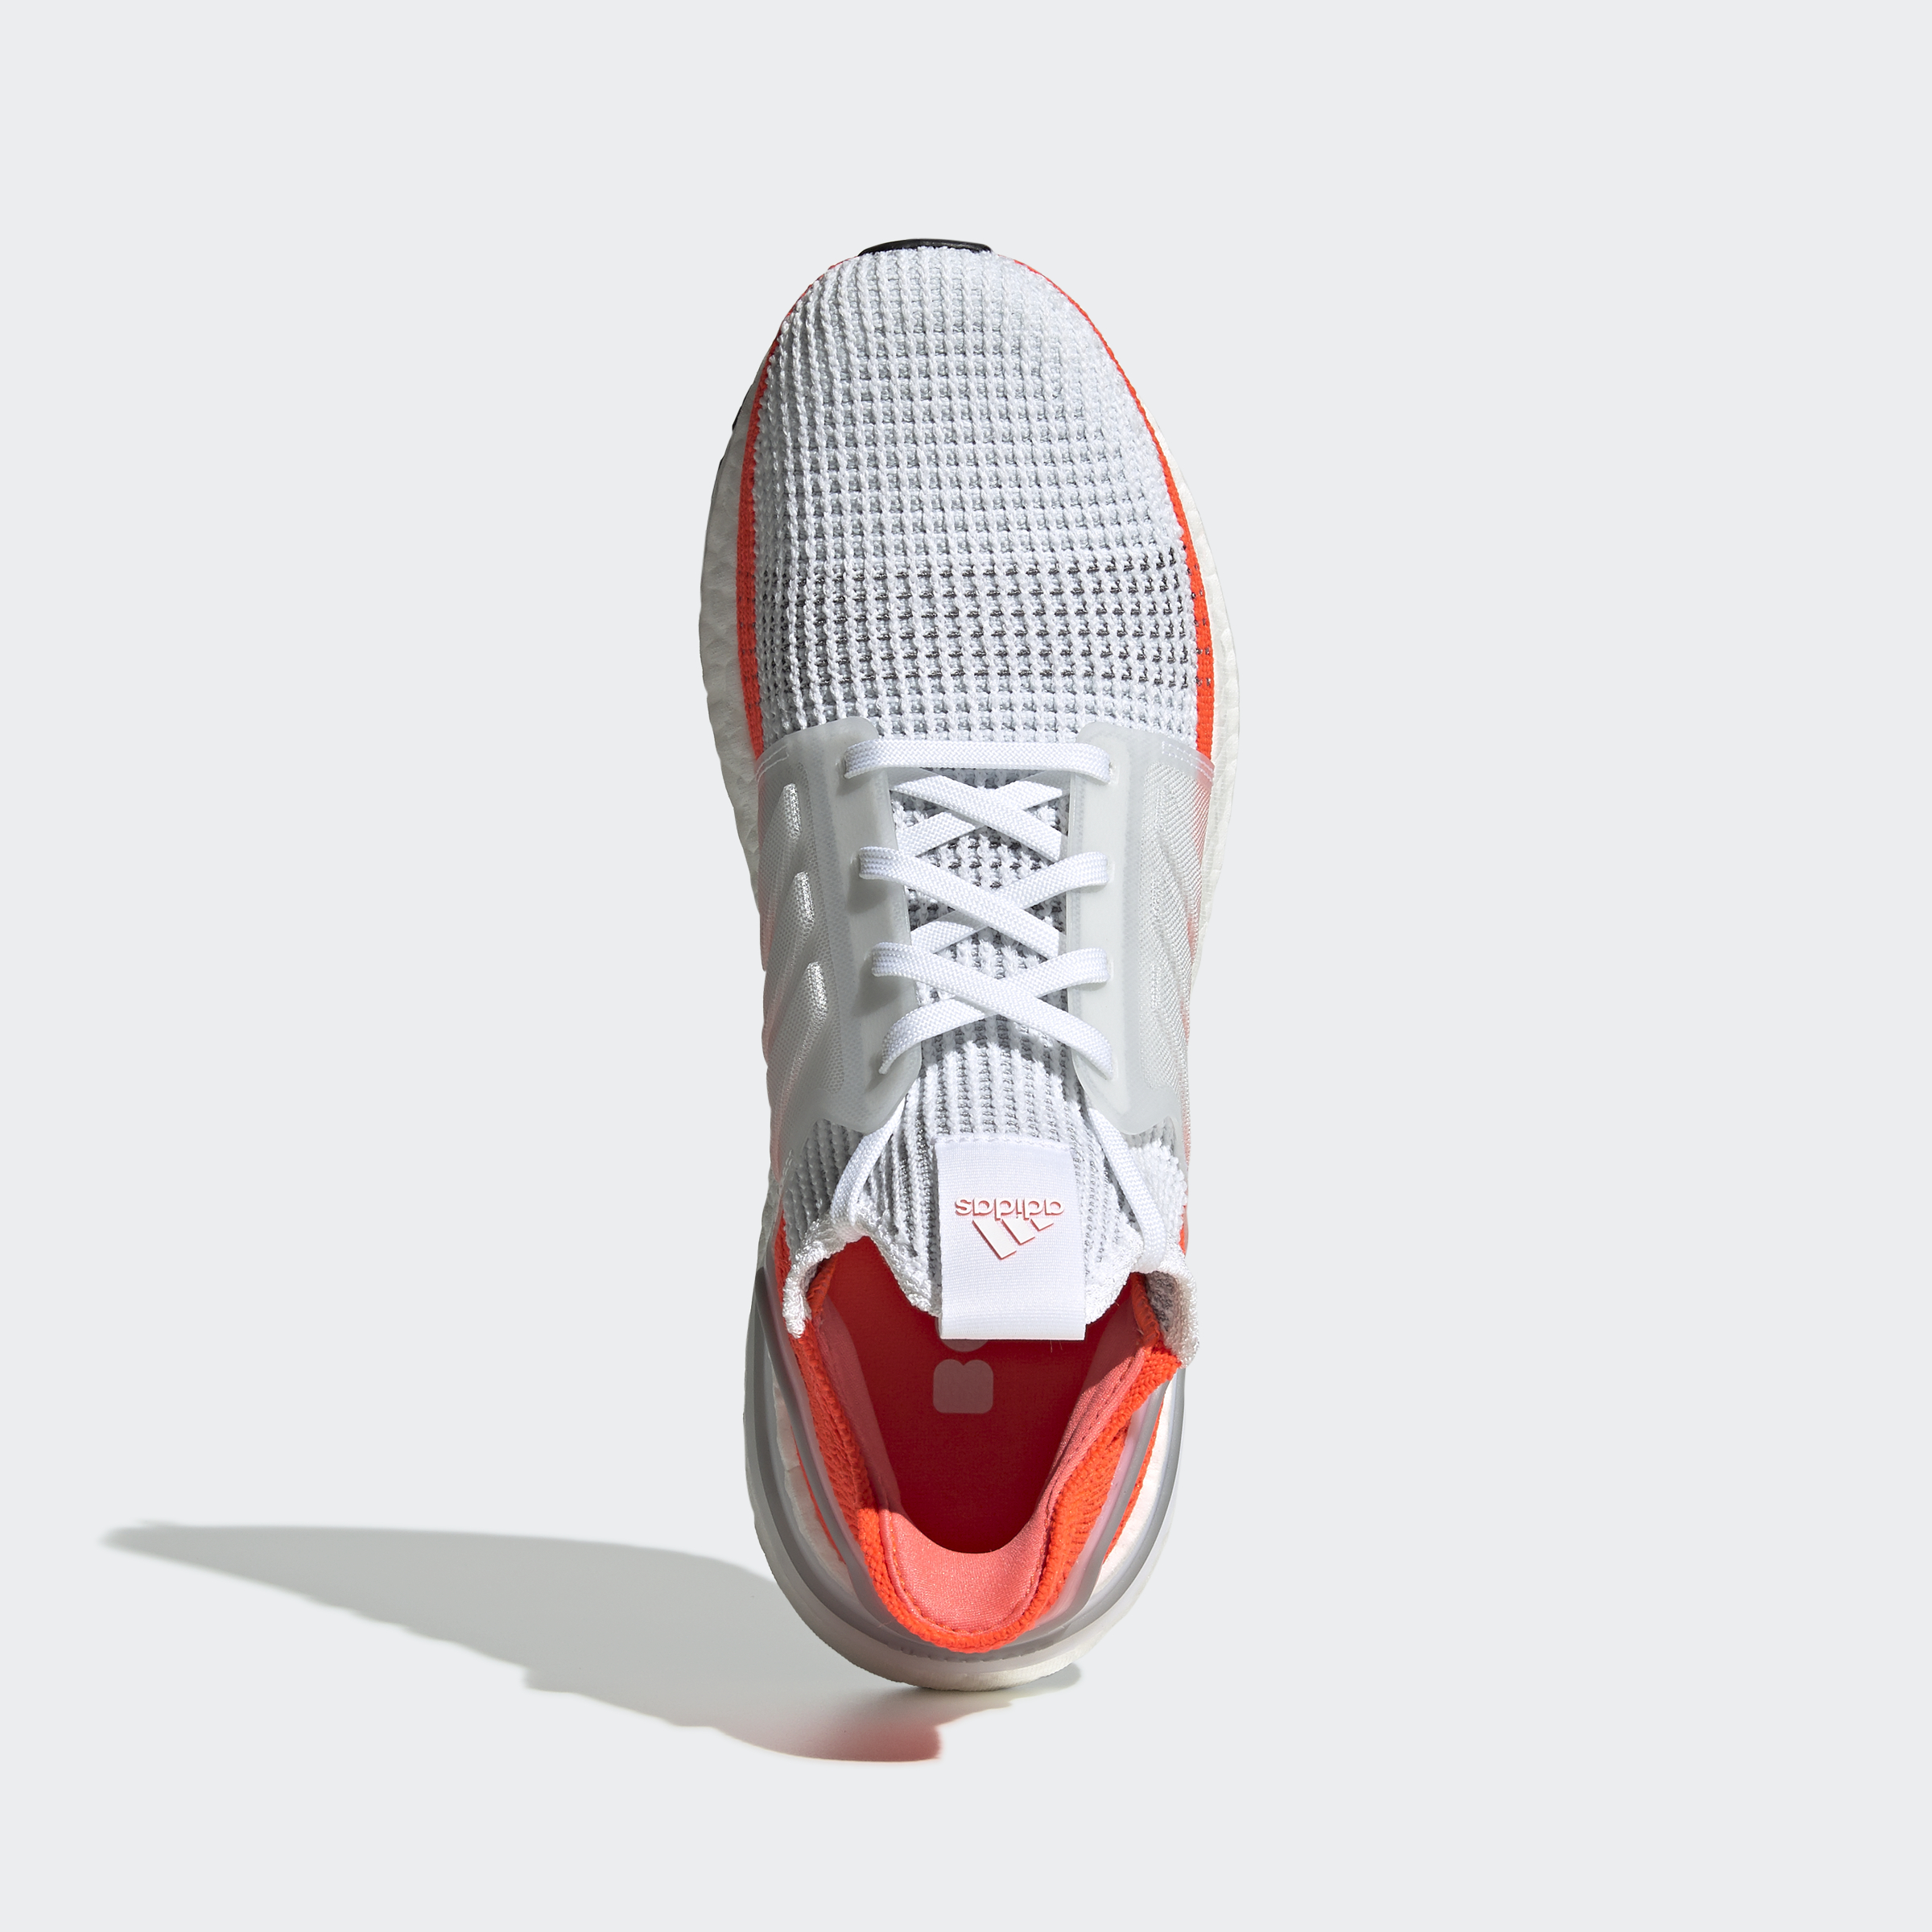 adidas-Ultraboost-19-Shoes-Athletic-amp-Sneakers thumbnail 23